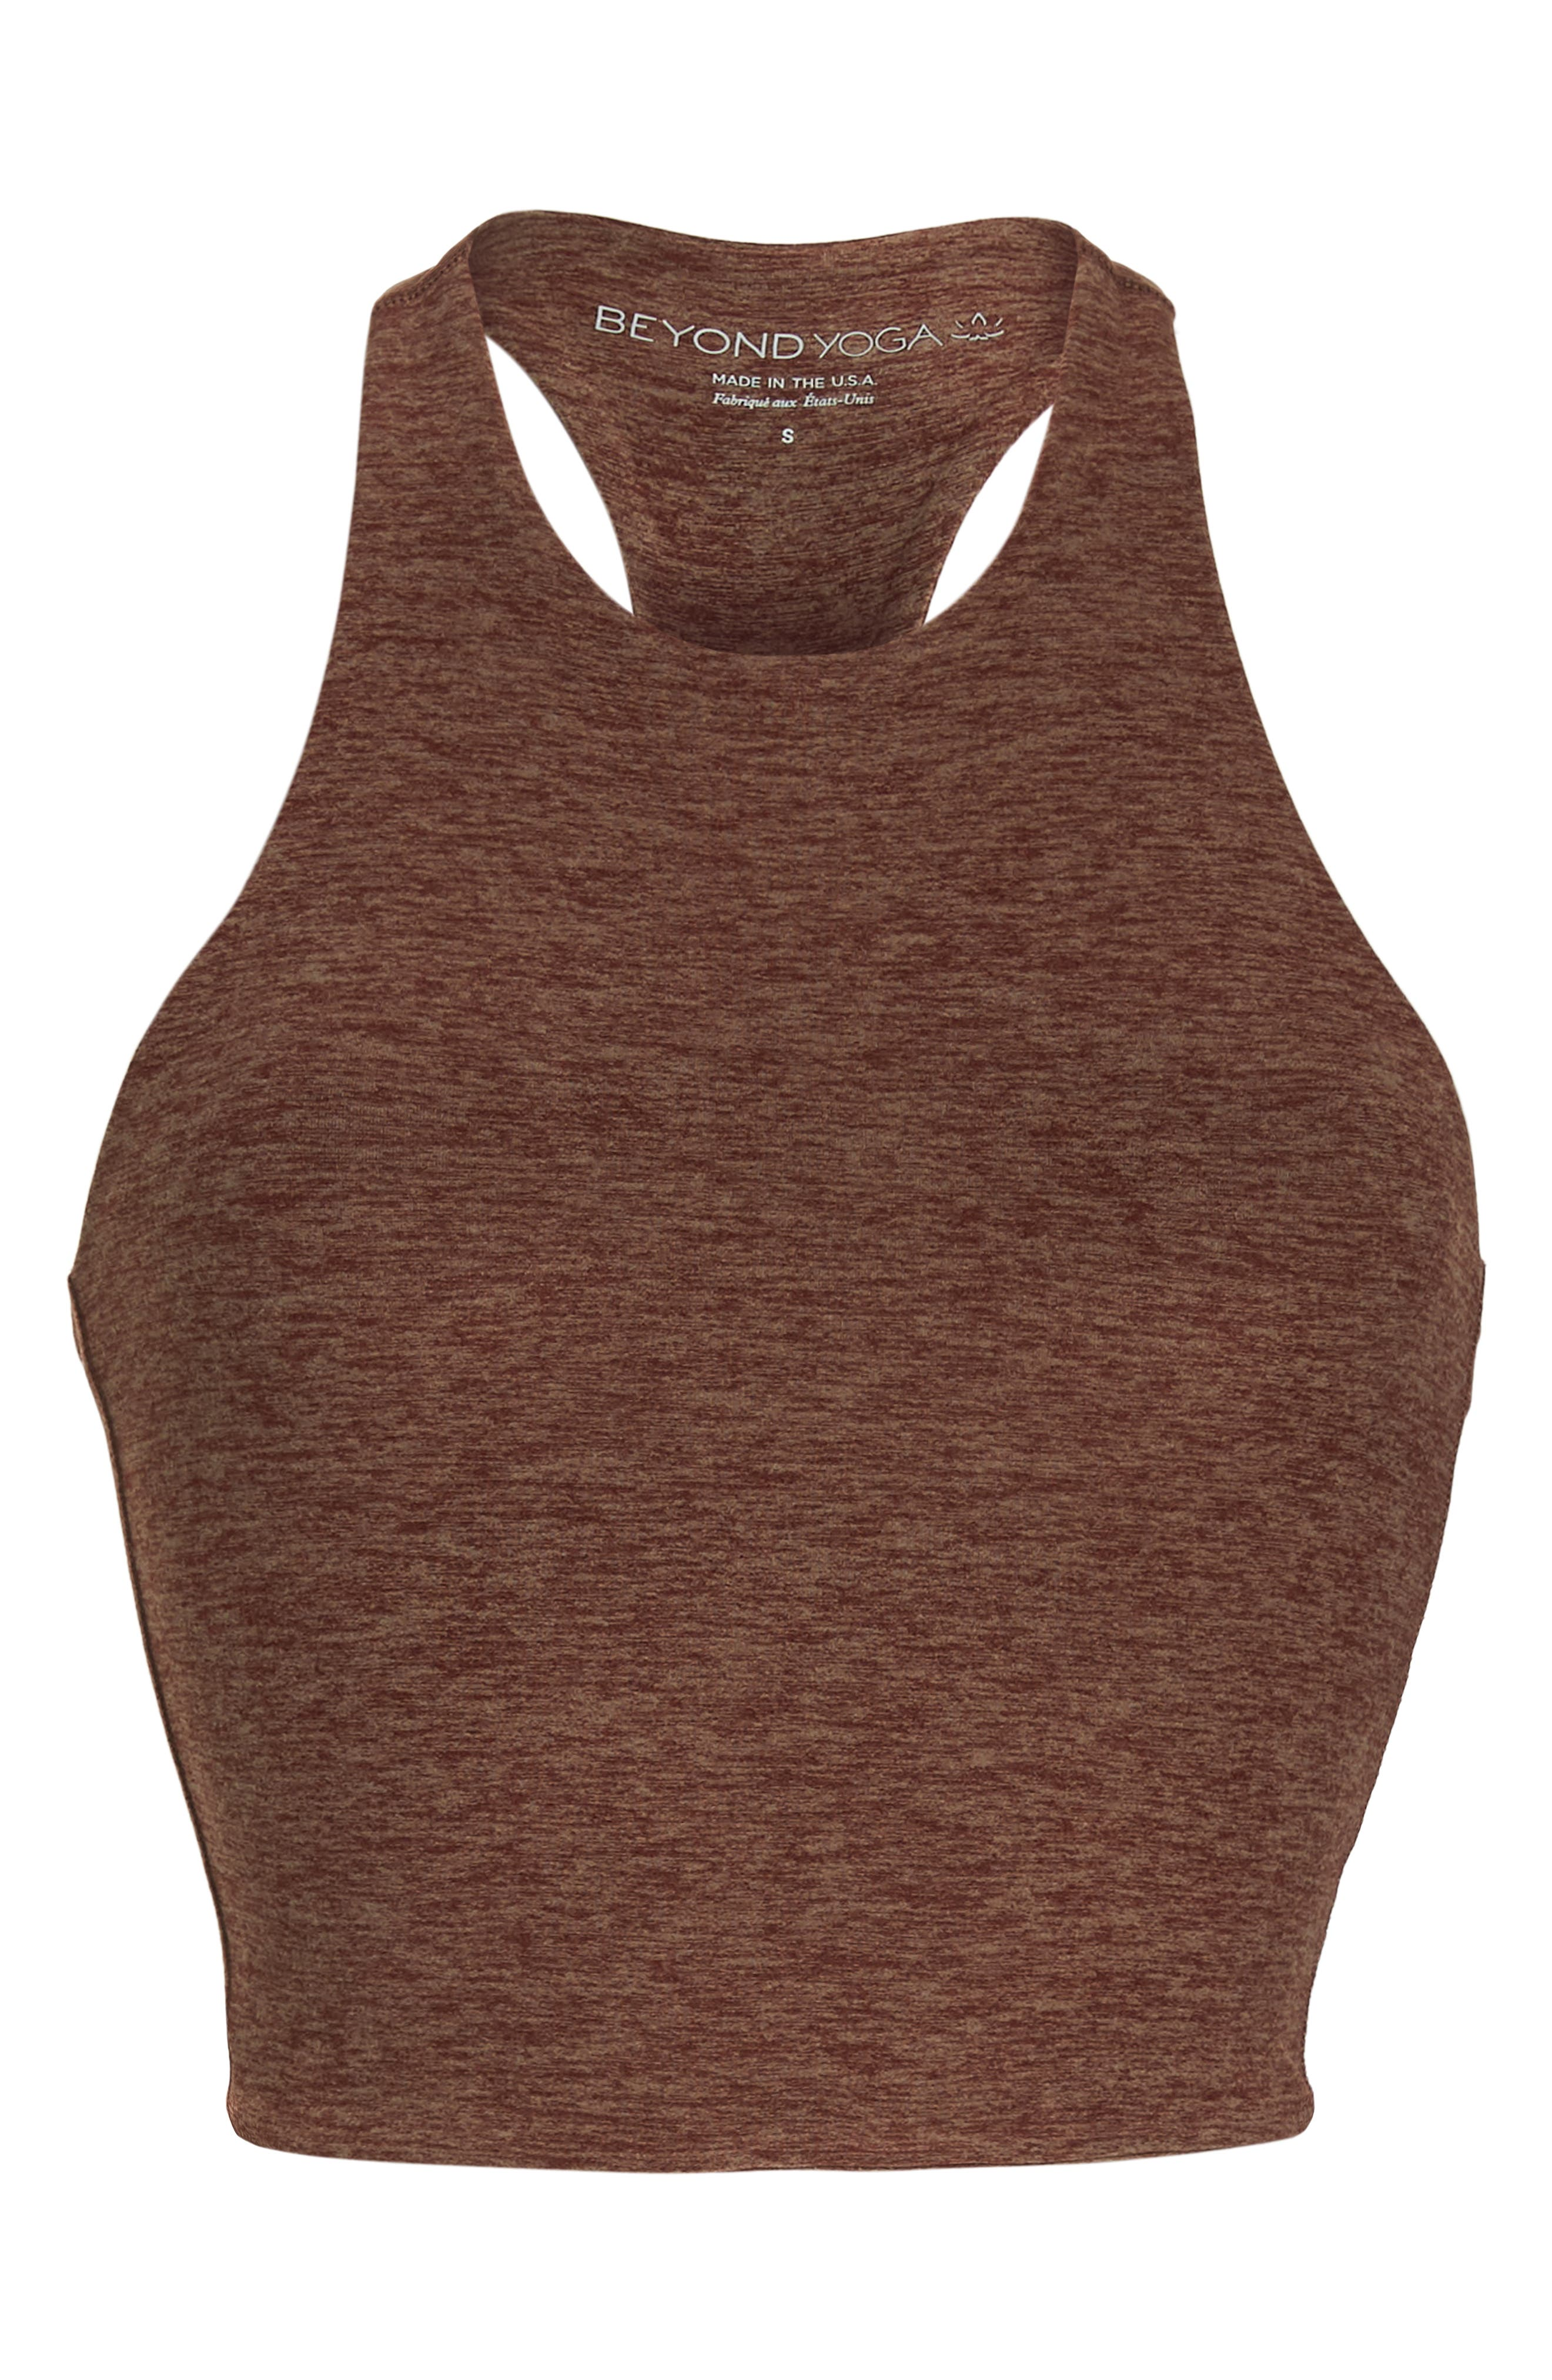 Across the Strap Cropped Top,                             Alternate thumbnail 7, color,                             RED ROCK/ TUMBLEWEED